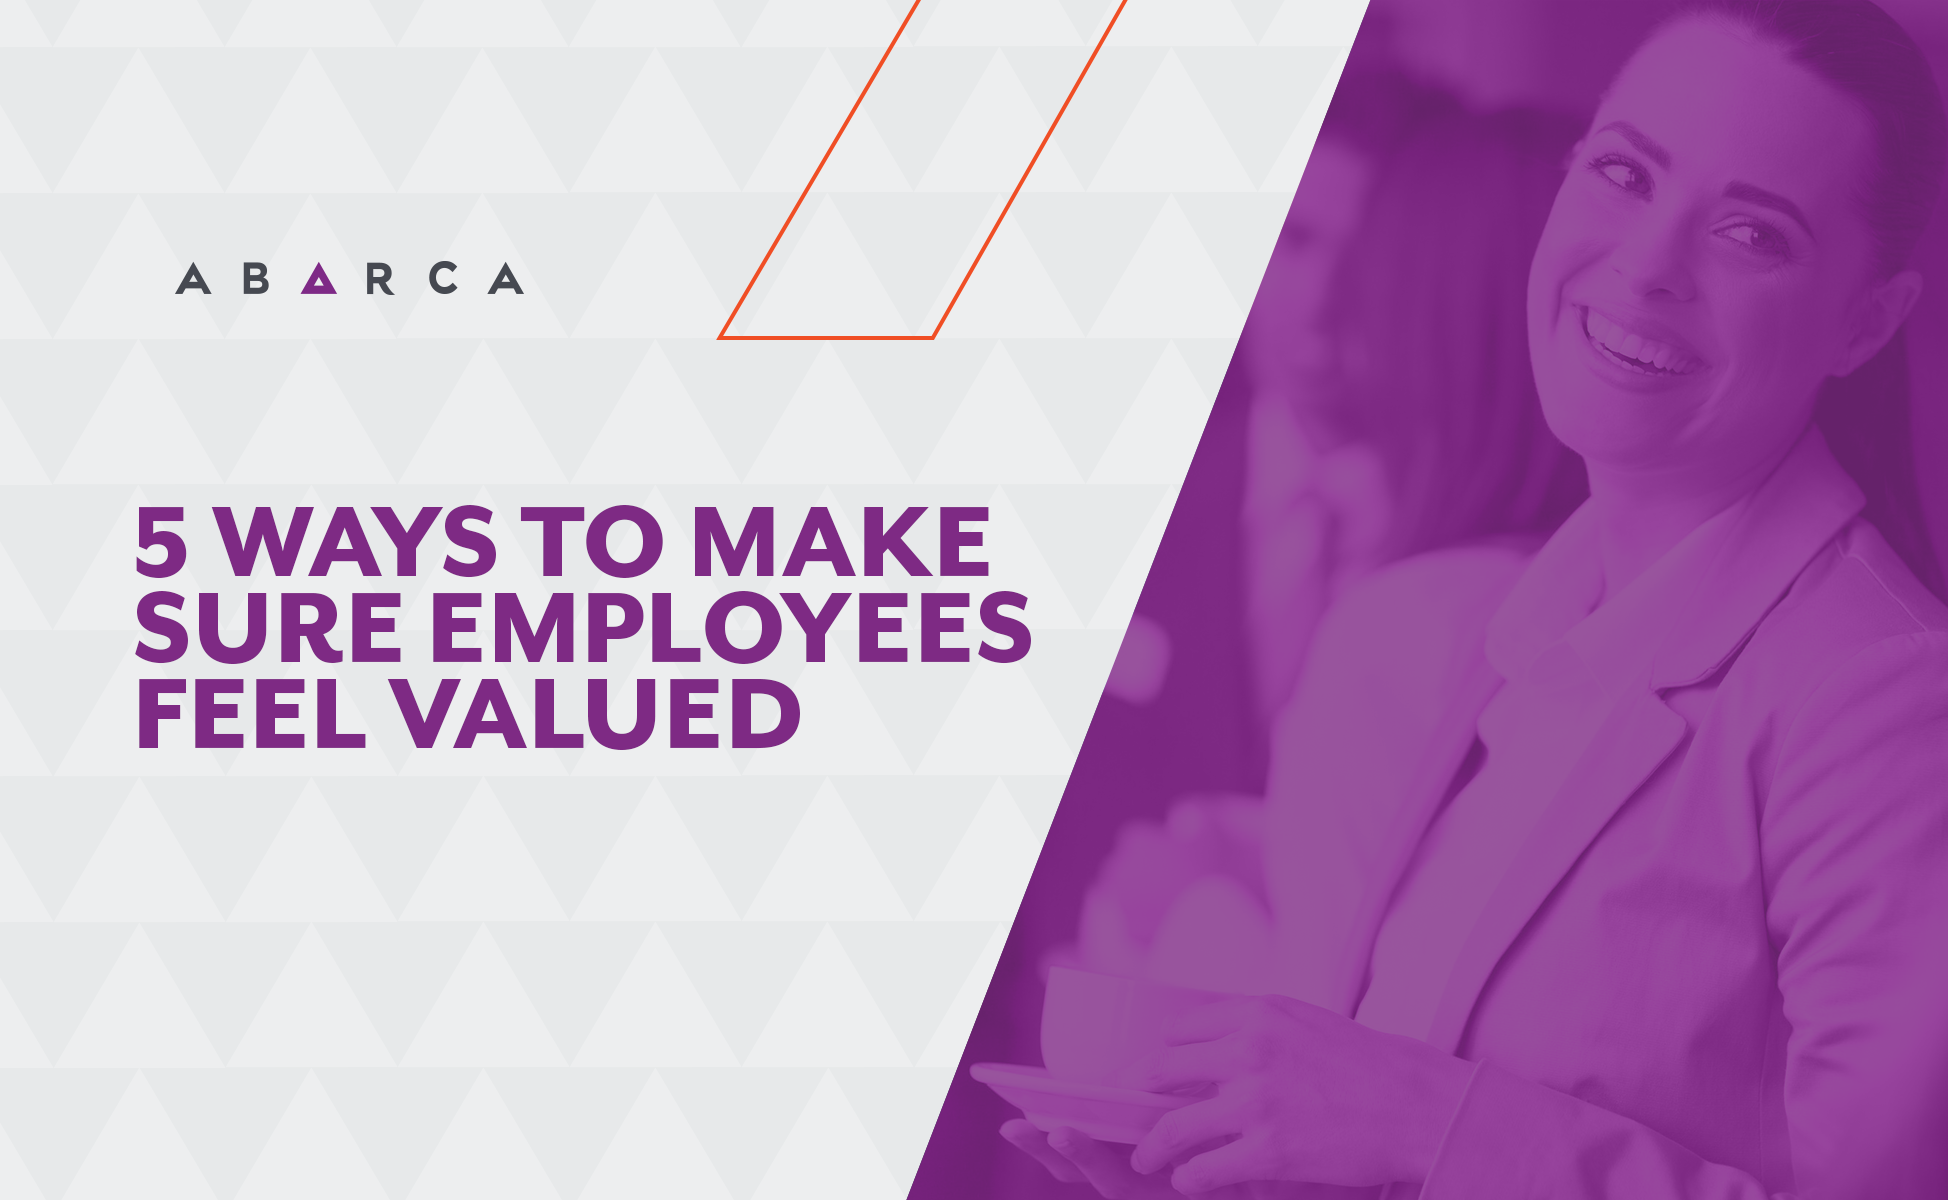 Abarca Health: 5 ways to make sure employees feel valued